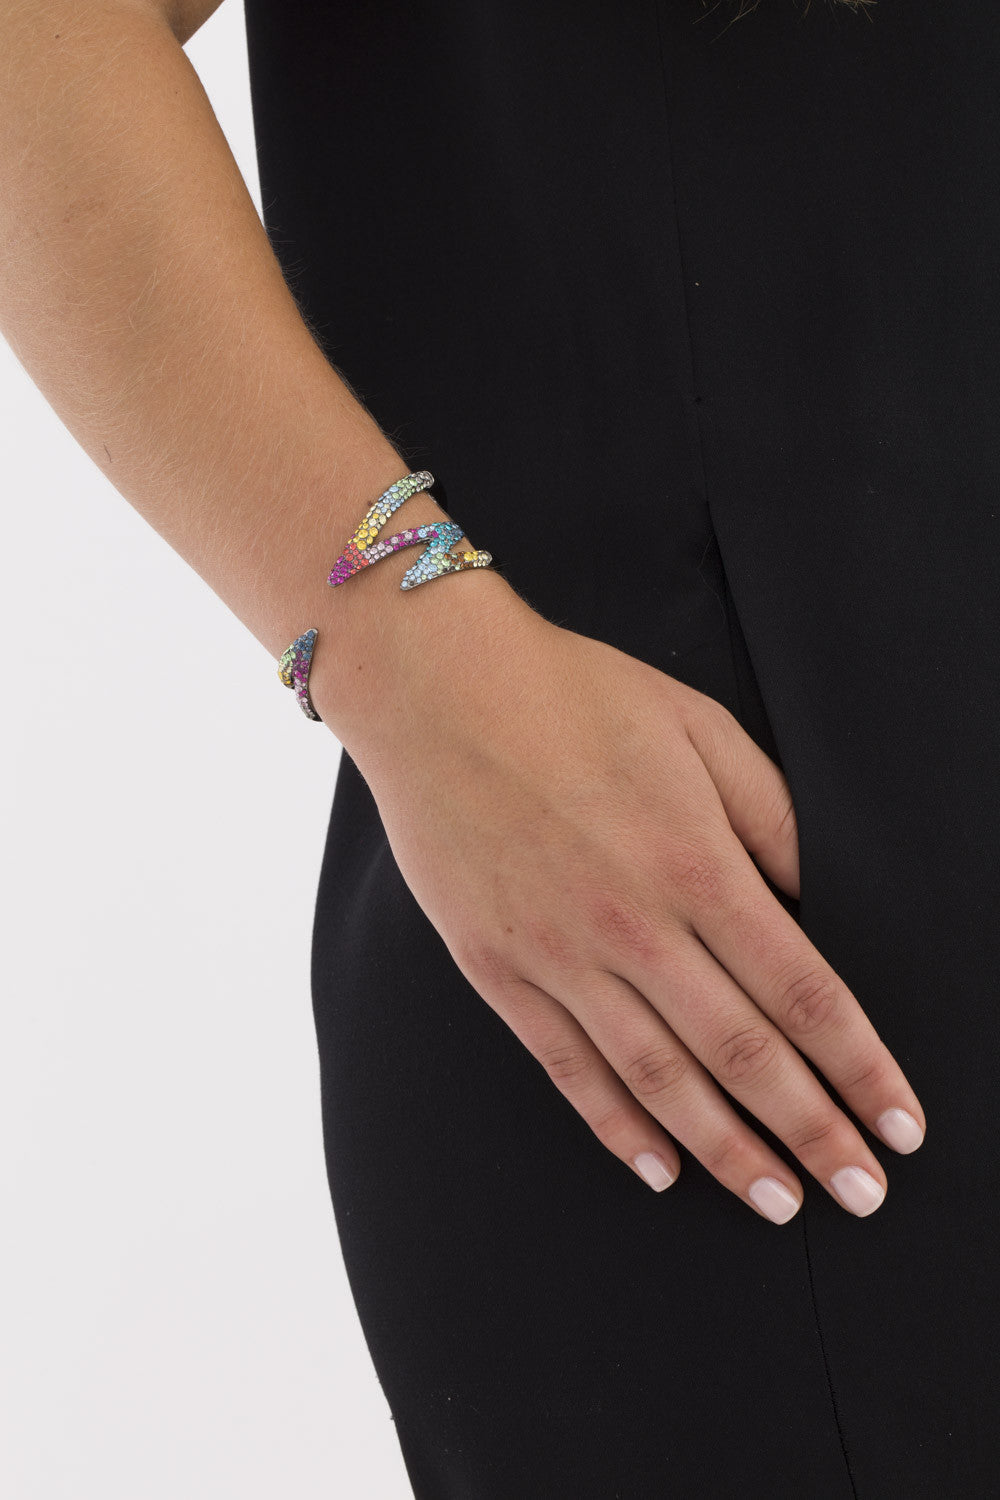 Prism Cuff by Sarah Magid Jewelry